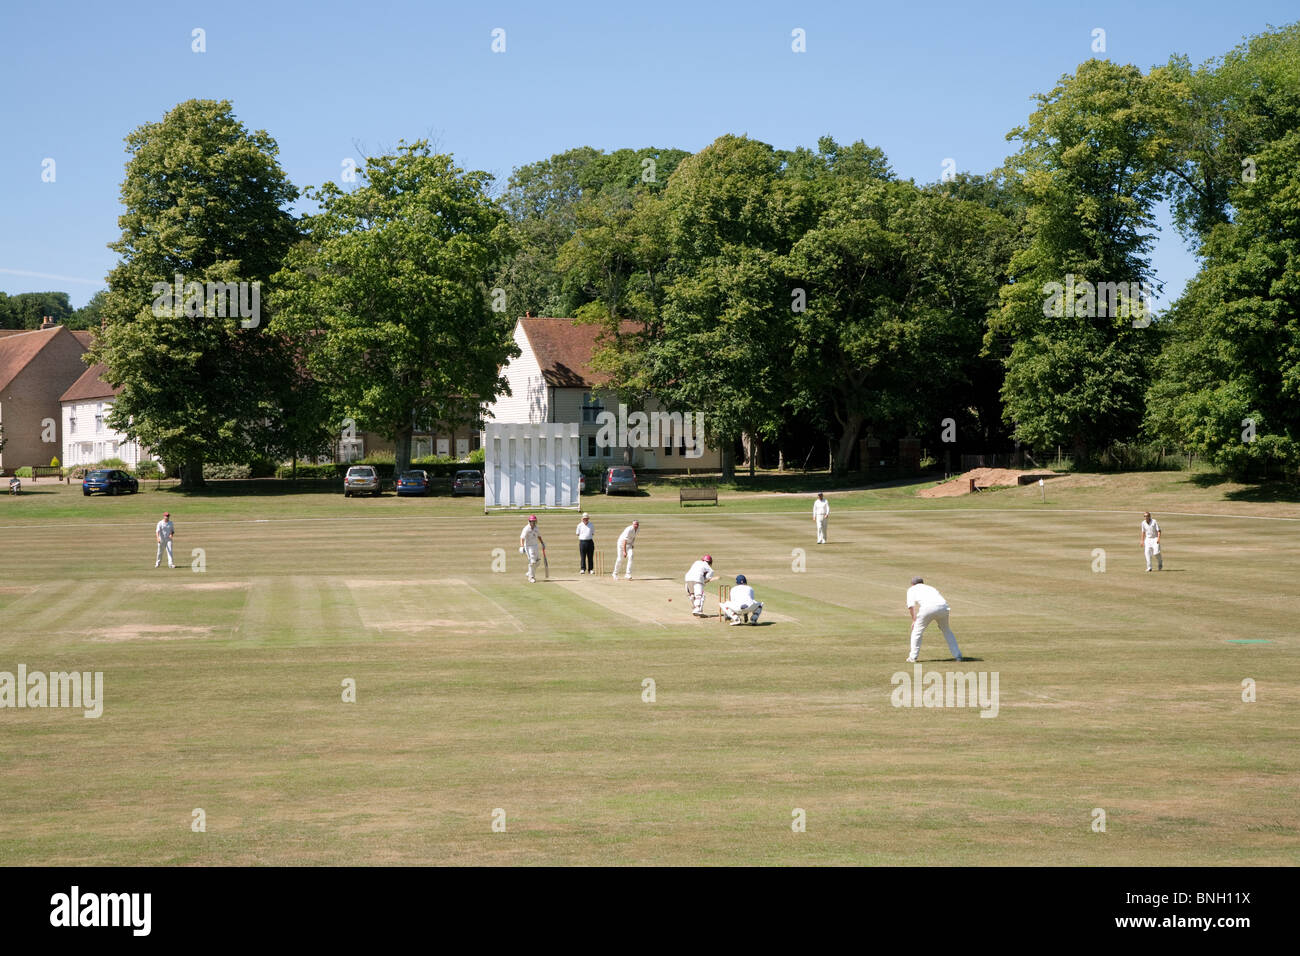 A weekend game of cricket in the english village of Lyminge, Kent, UK - Stock Image